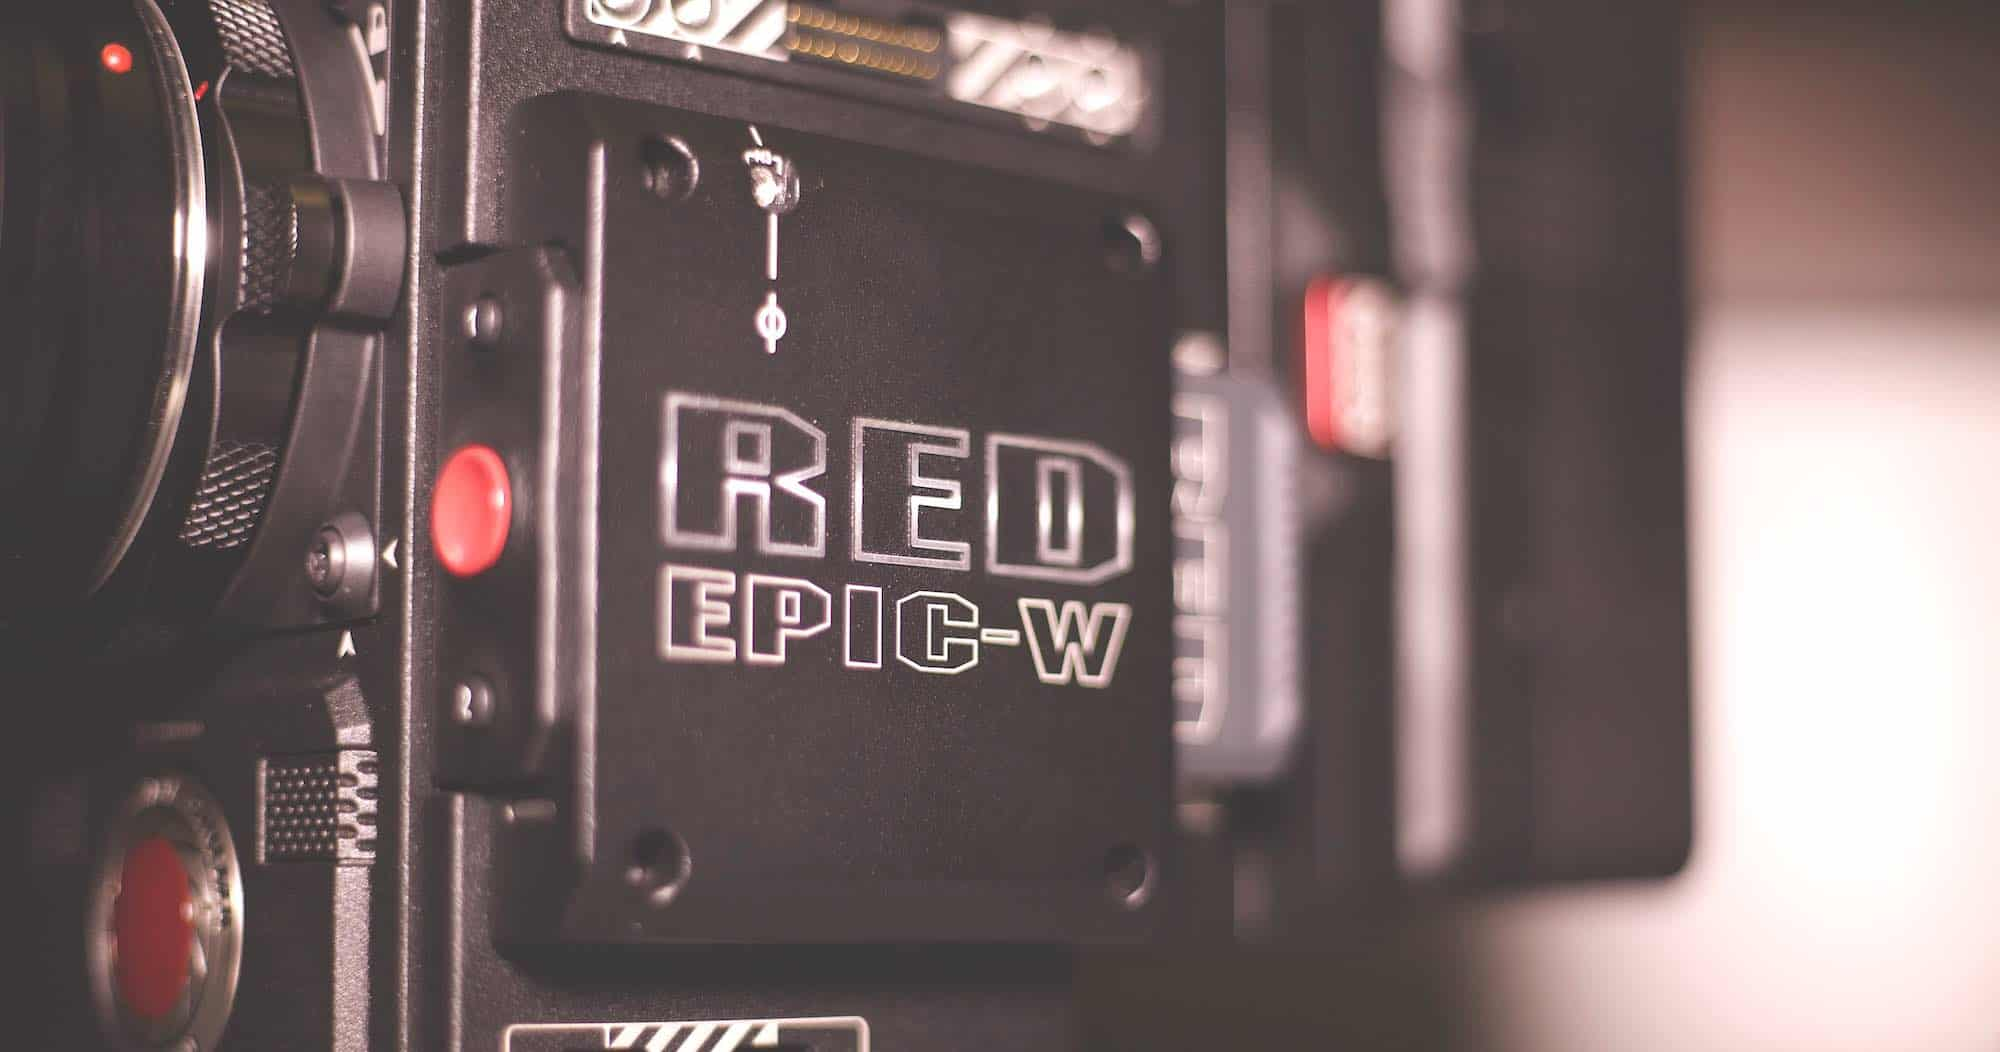 Red Epic Camera in Los Angeles video production company